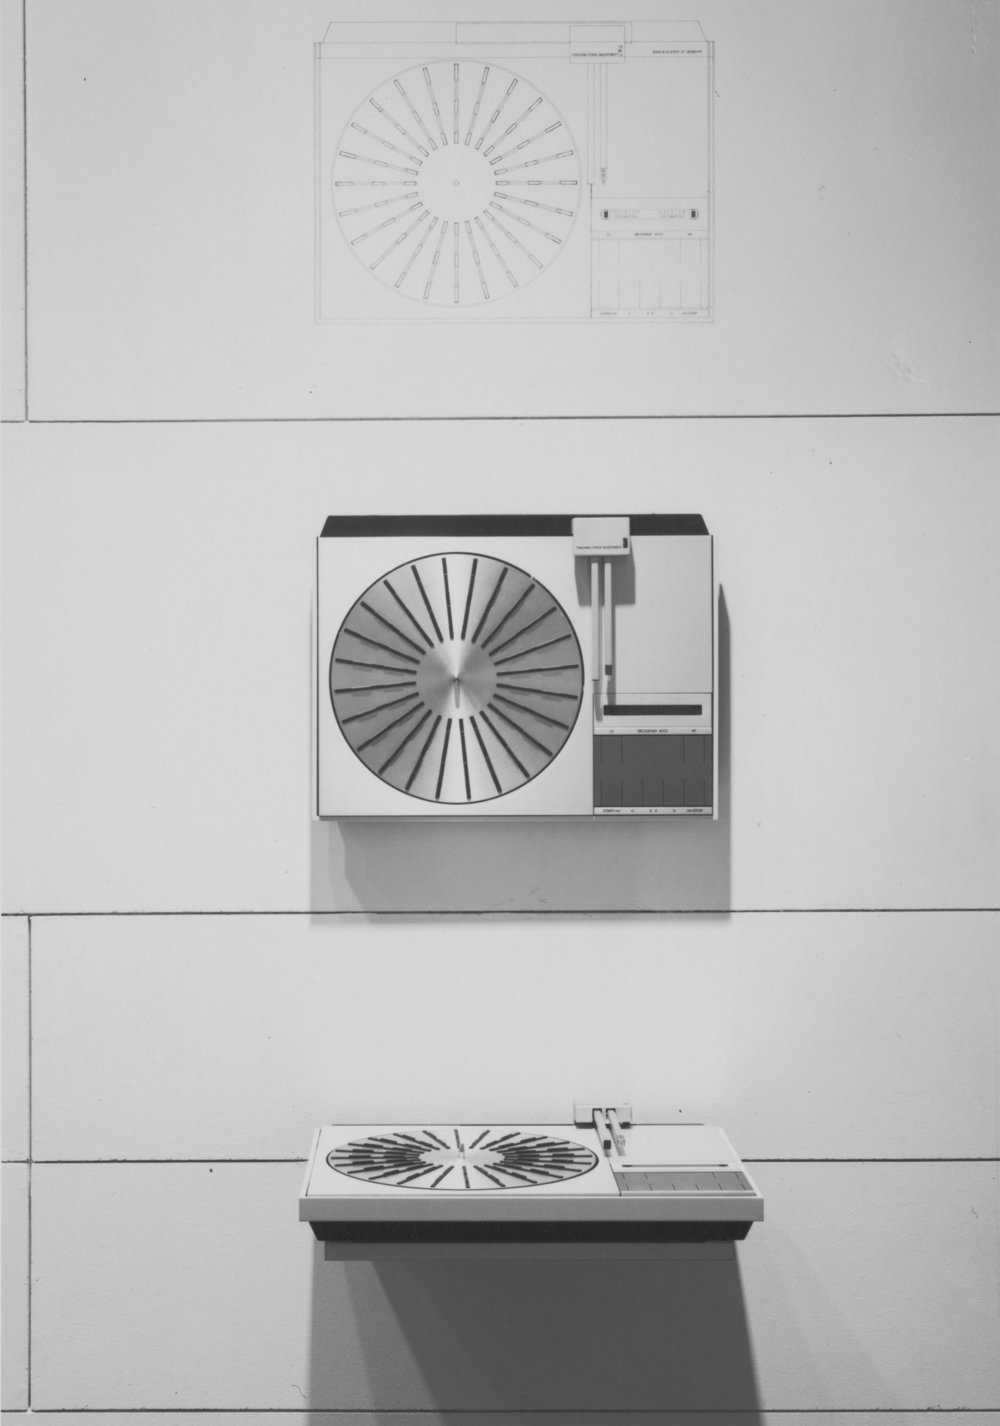 "Installation view of the Beogram 4000 record player at The Museum of Modern Art's exhibition ""Bang & Olufsen: Design for Sound by Jakob Jensen"", April 14–June 18, 1978, New York. Courtesy MoMA."